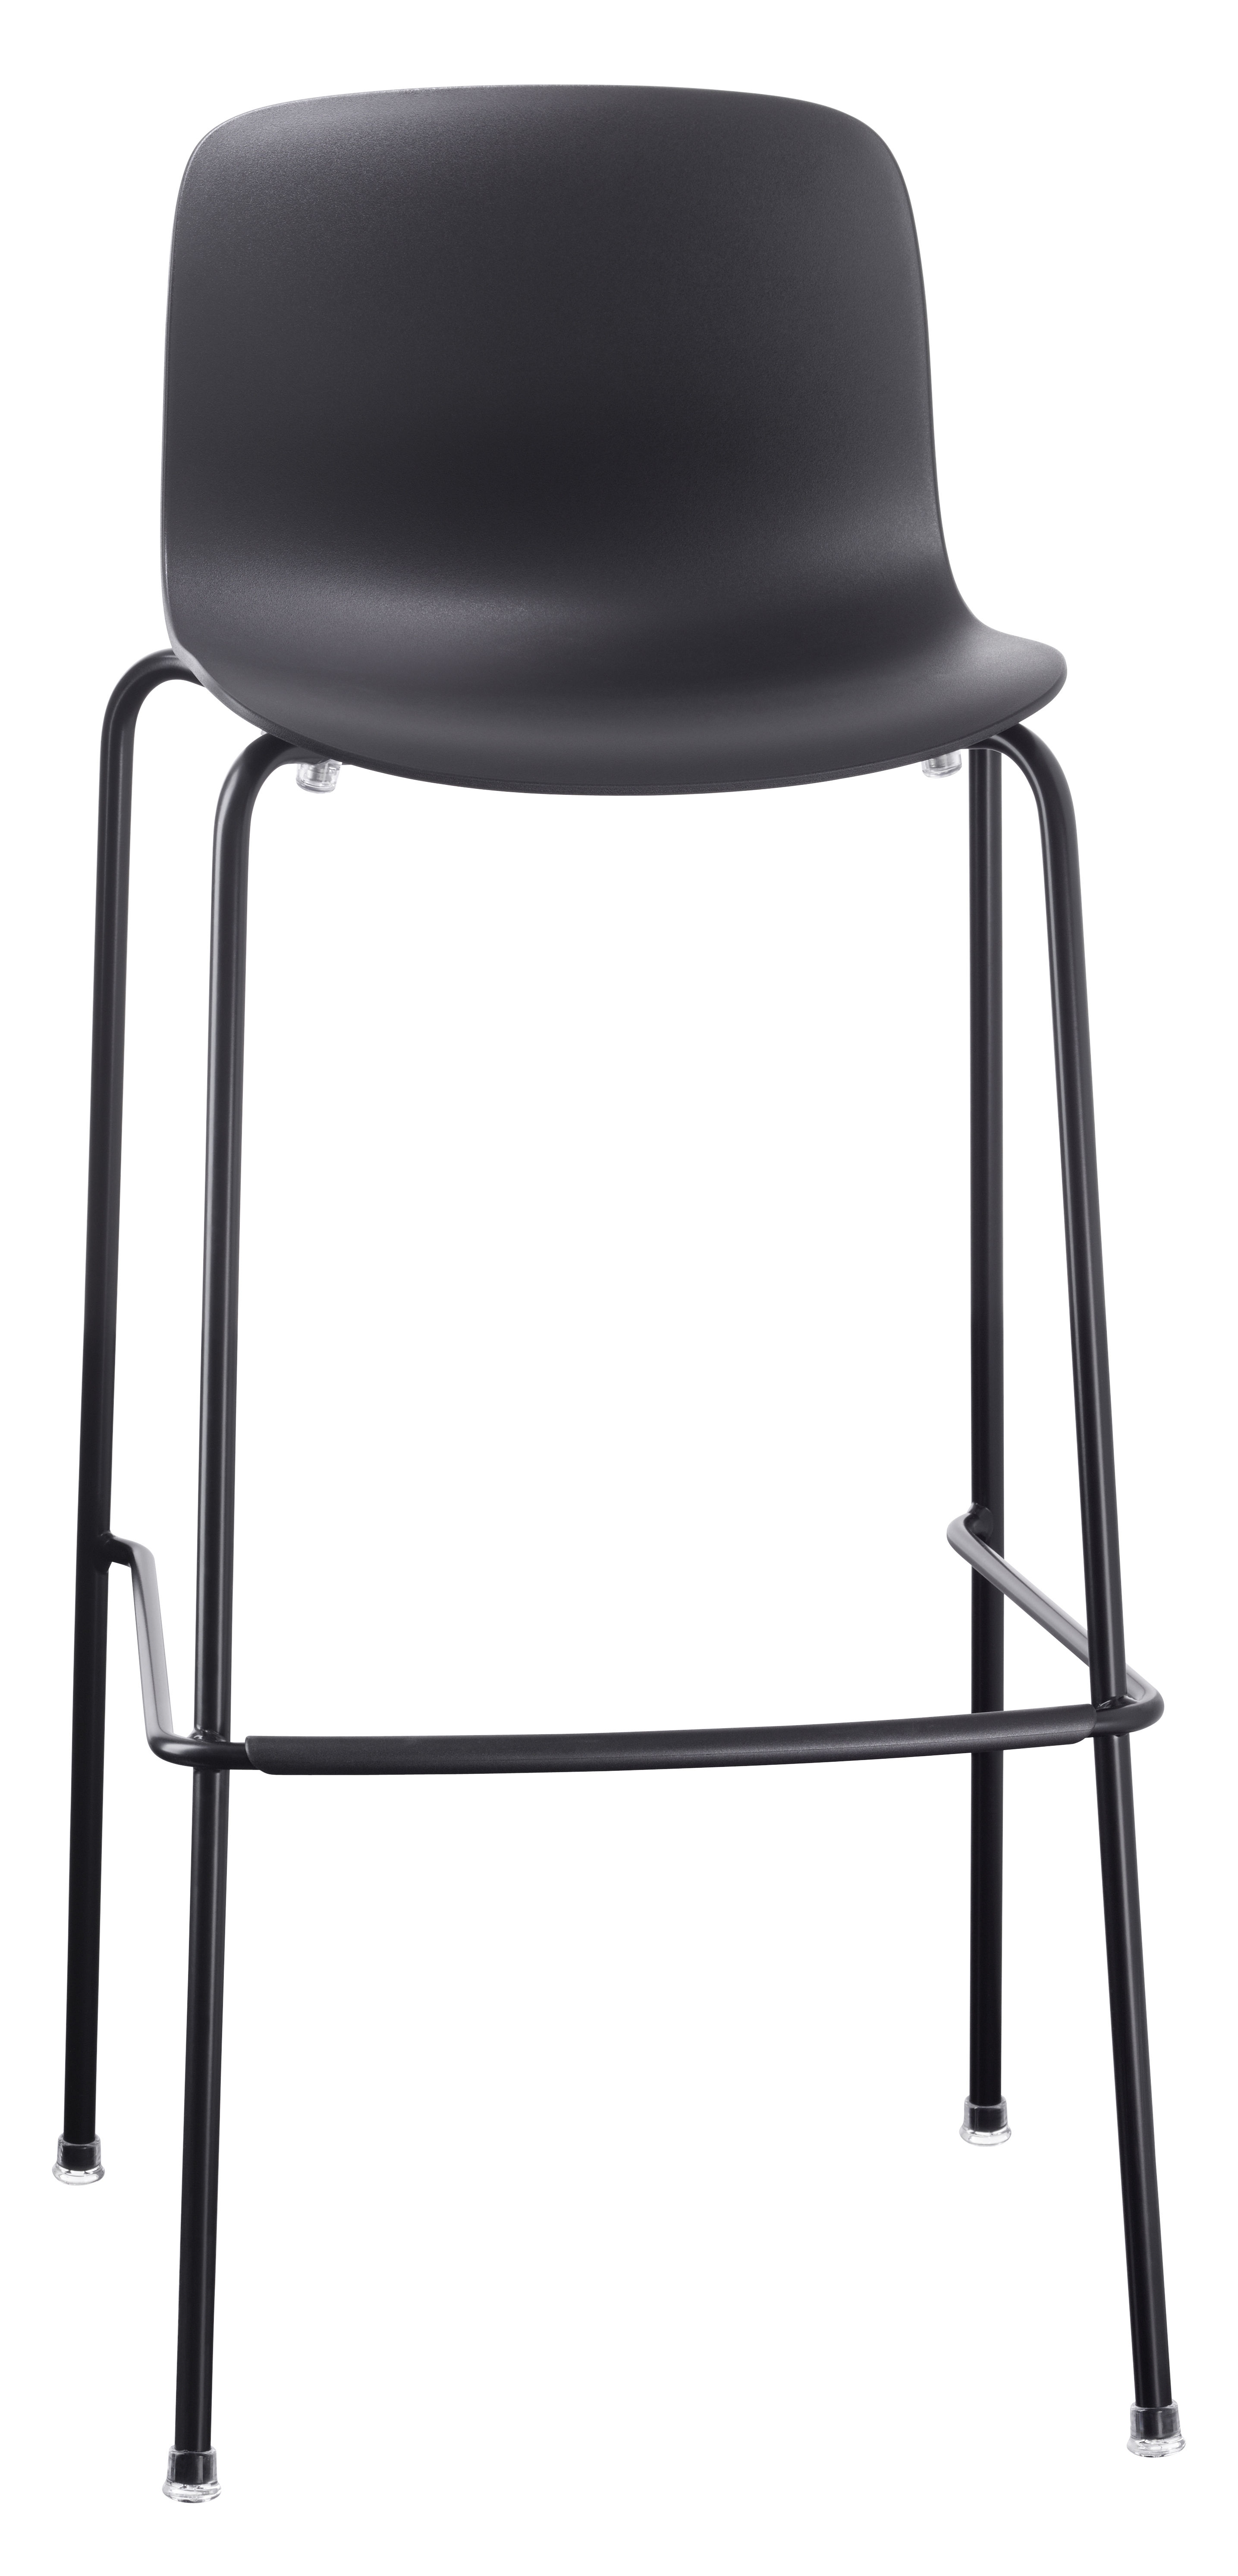 tabouret de bar troy outdoor plastique pieds m tal h. Black Bedroom Furniture Sets. Home Design Ideas